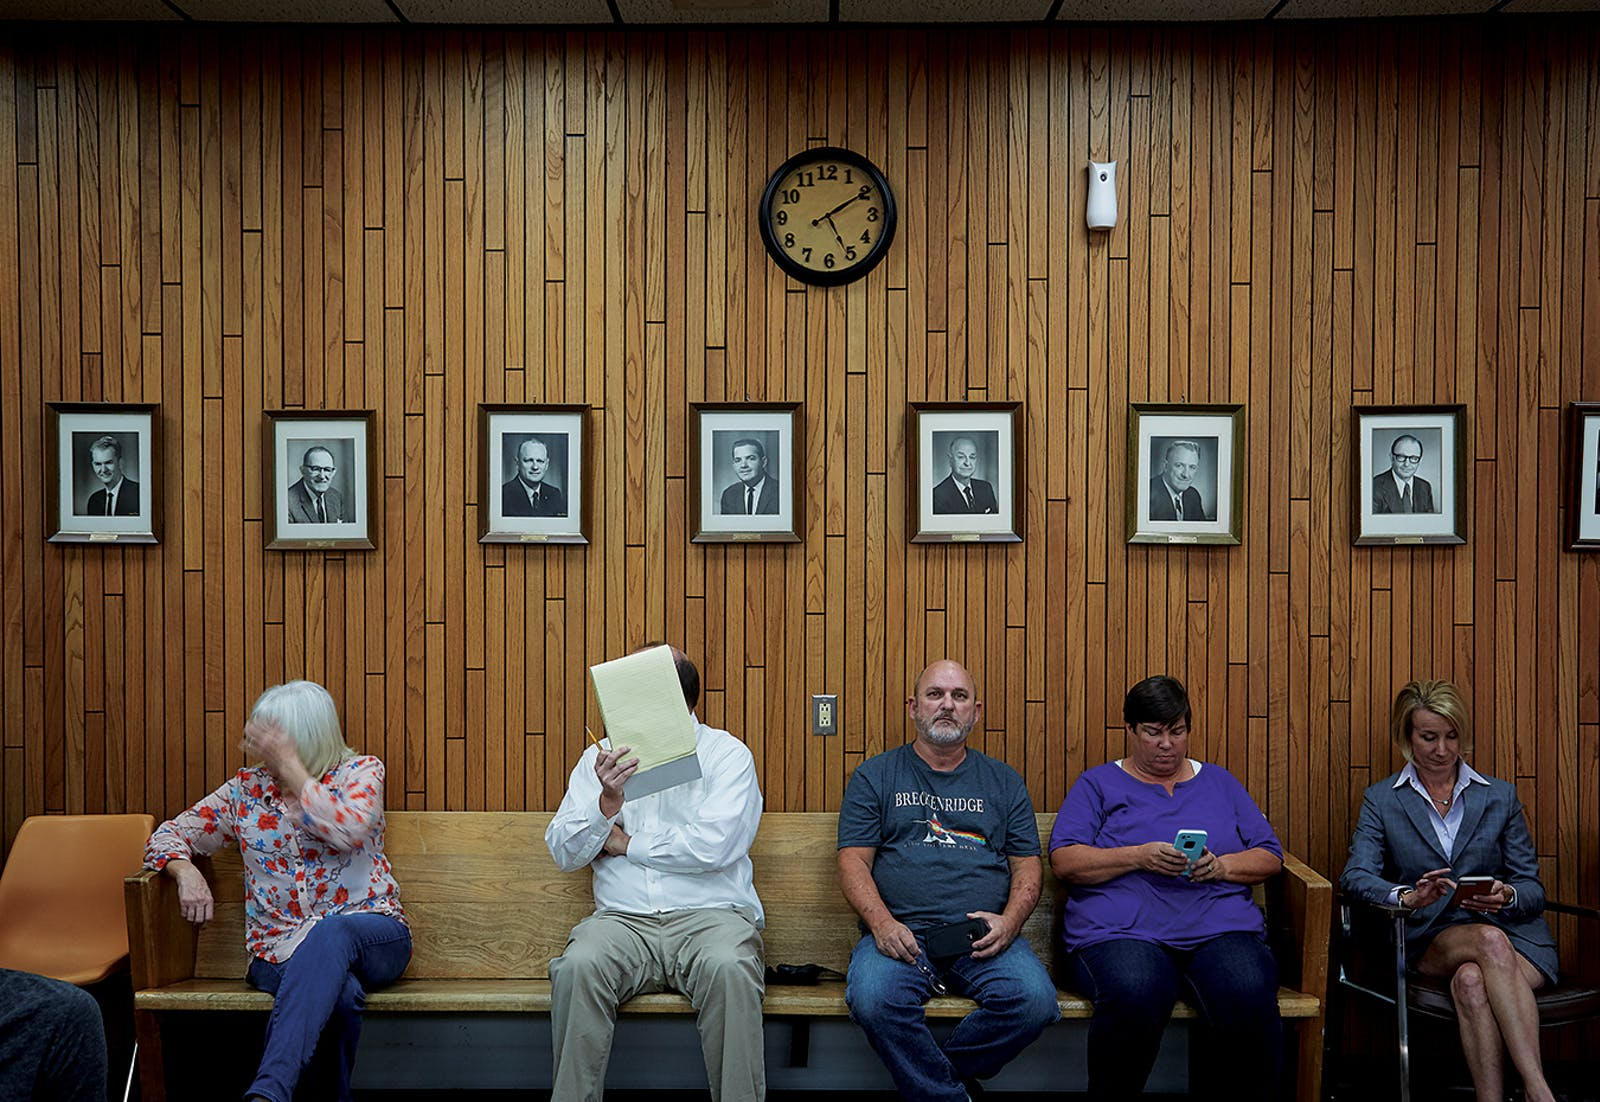 people waiting at the Groves city council meeting